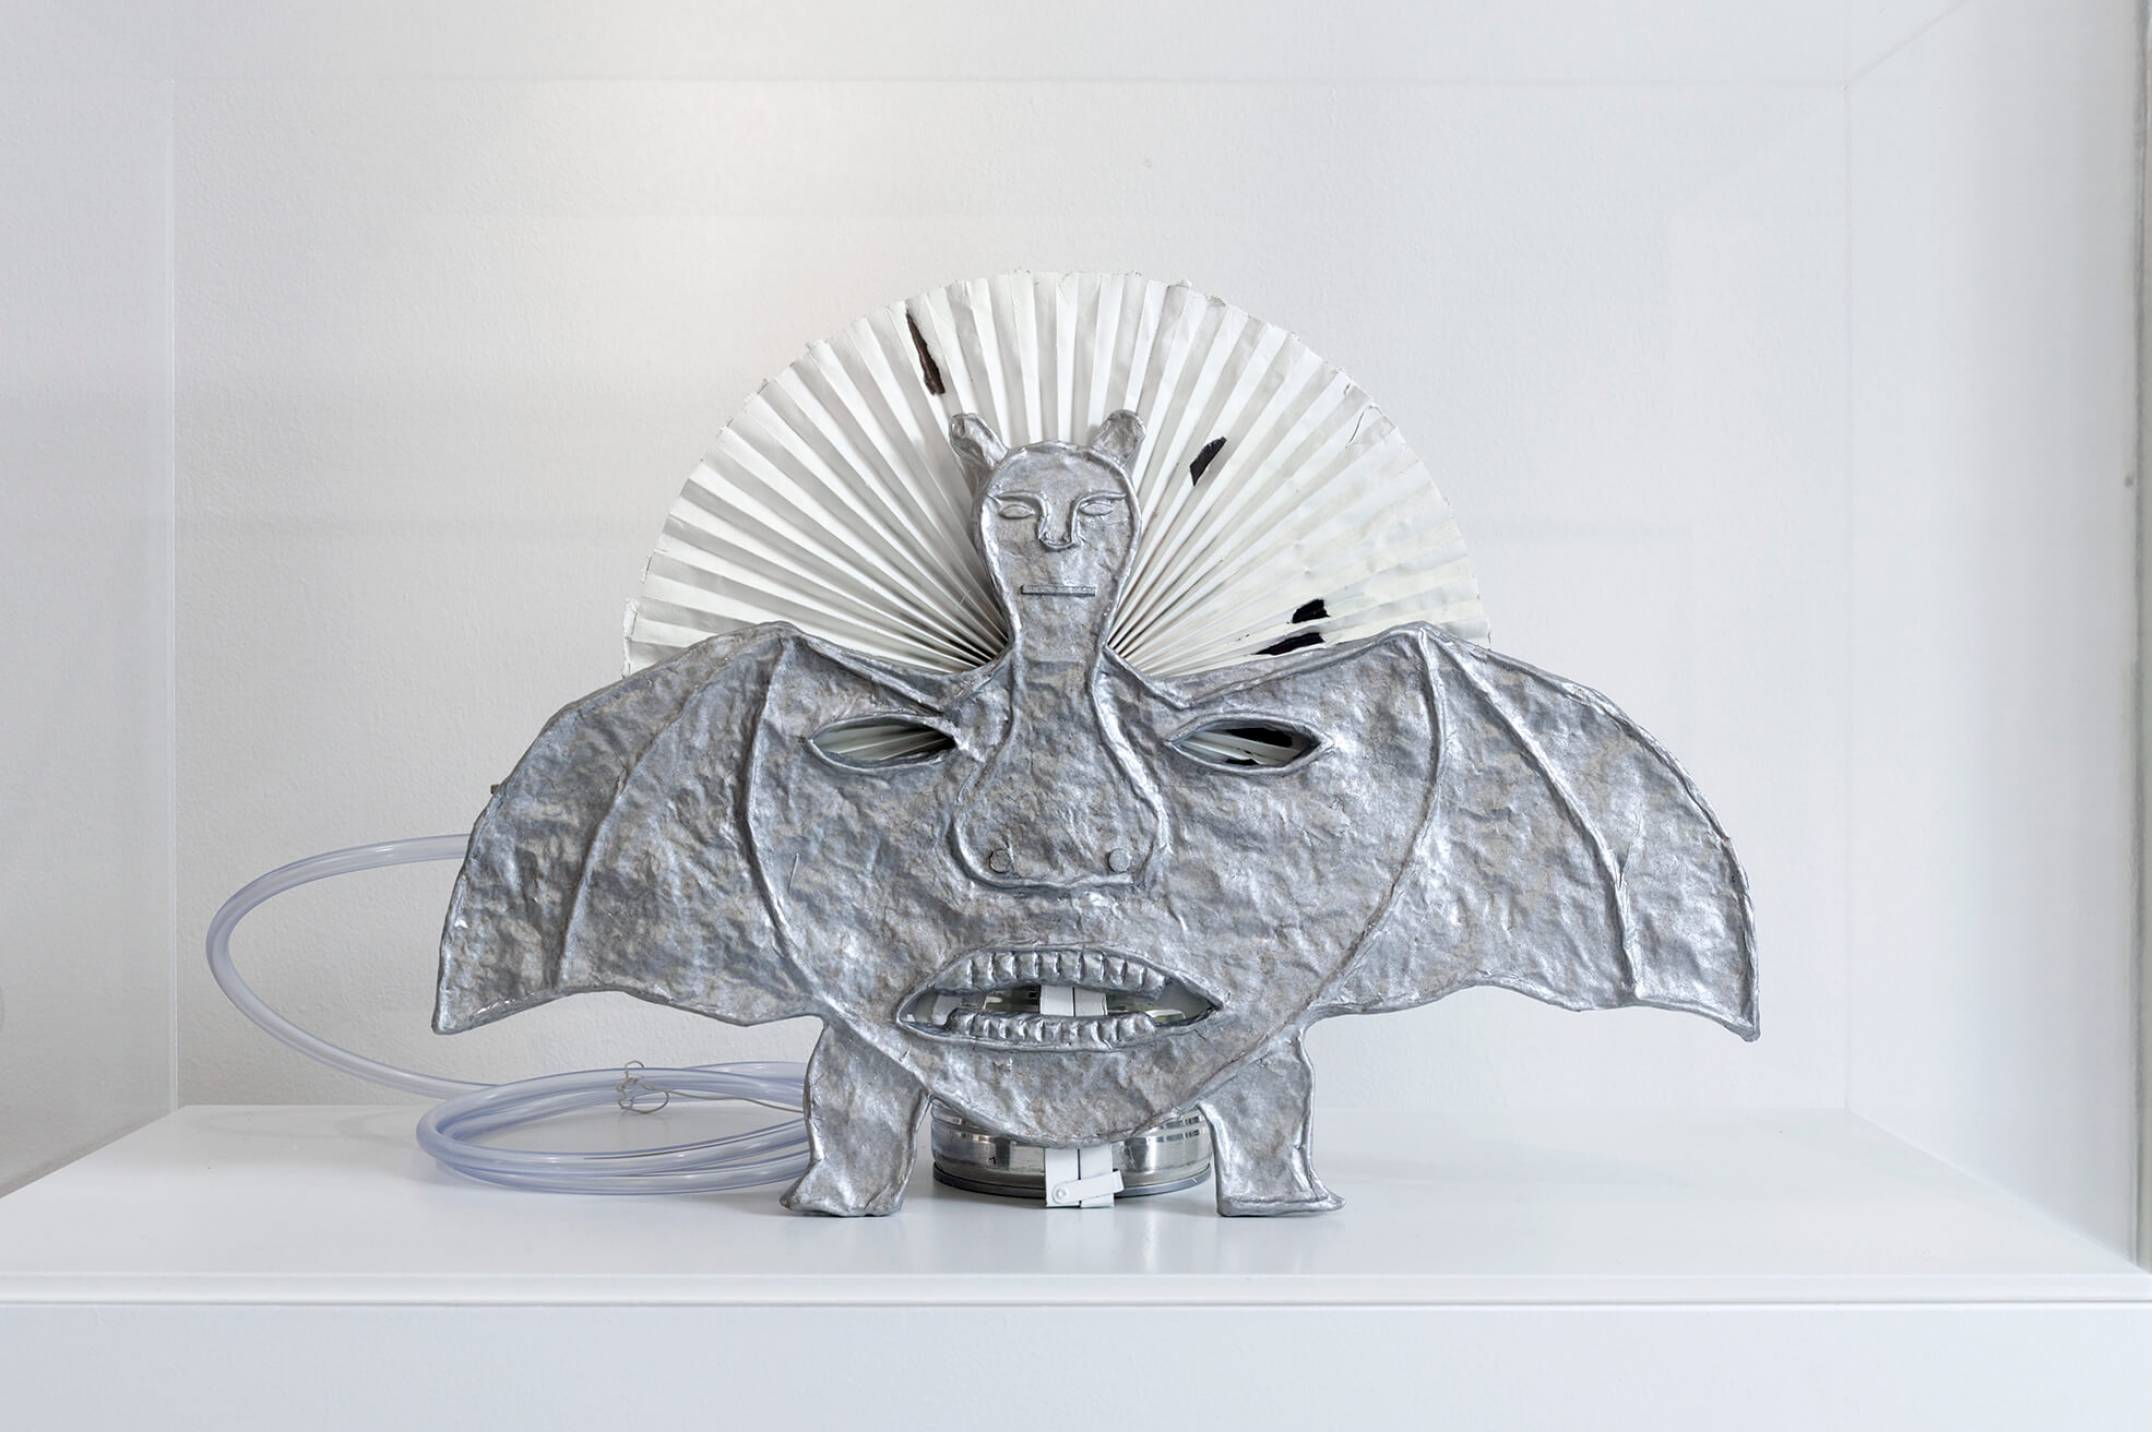 Rodrigo Hernández, <em>Pierced cat</em>, 2017, papier-mache, lacquer, acetate film, wood, cardboard, found paper fan, plastic tube, other materials inside a plinth with a plexiglass box, 146 × 58 × 27 cm - Mendes Wood DM